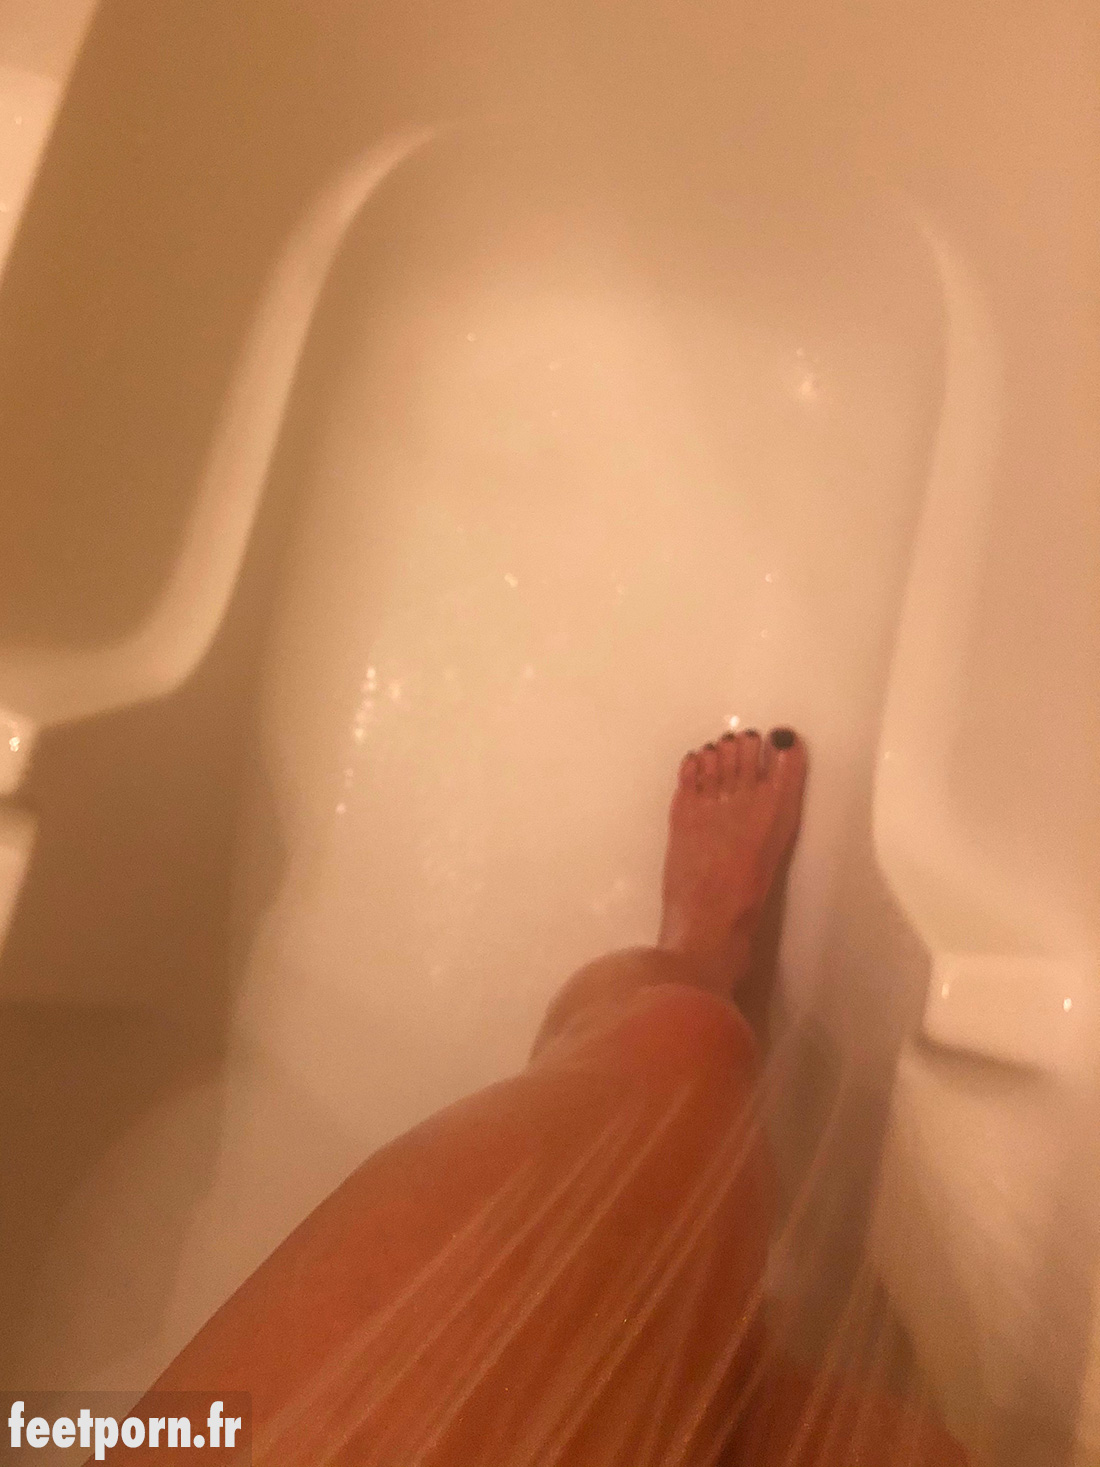 Naked in the shower she shows her feet